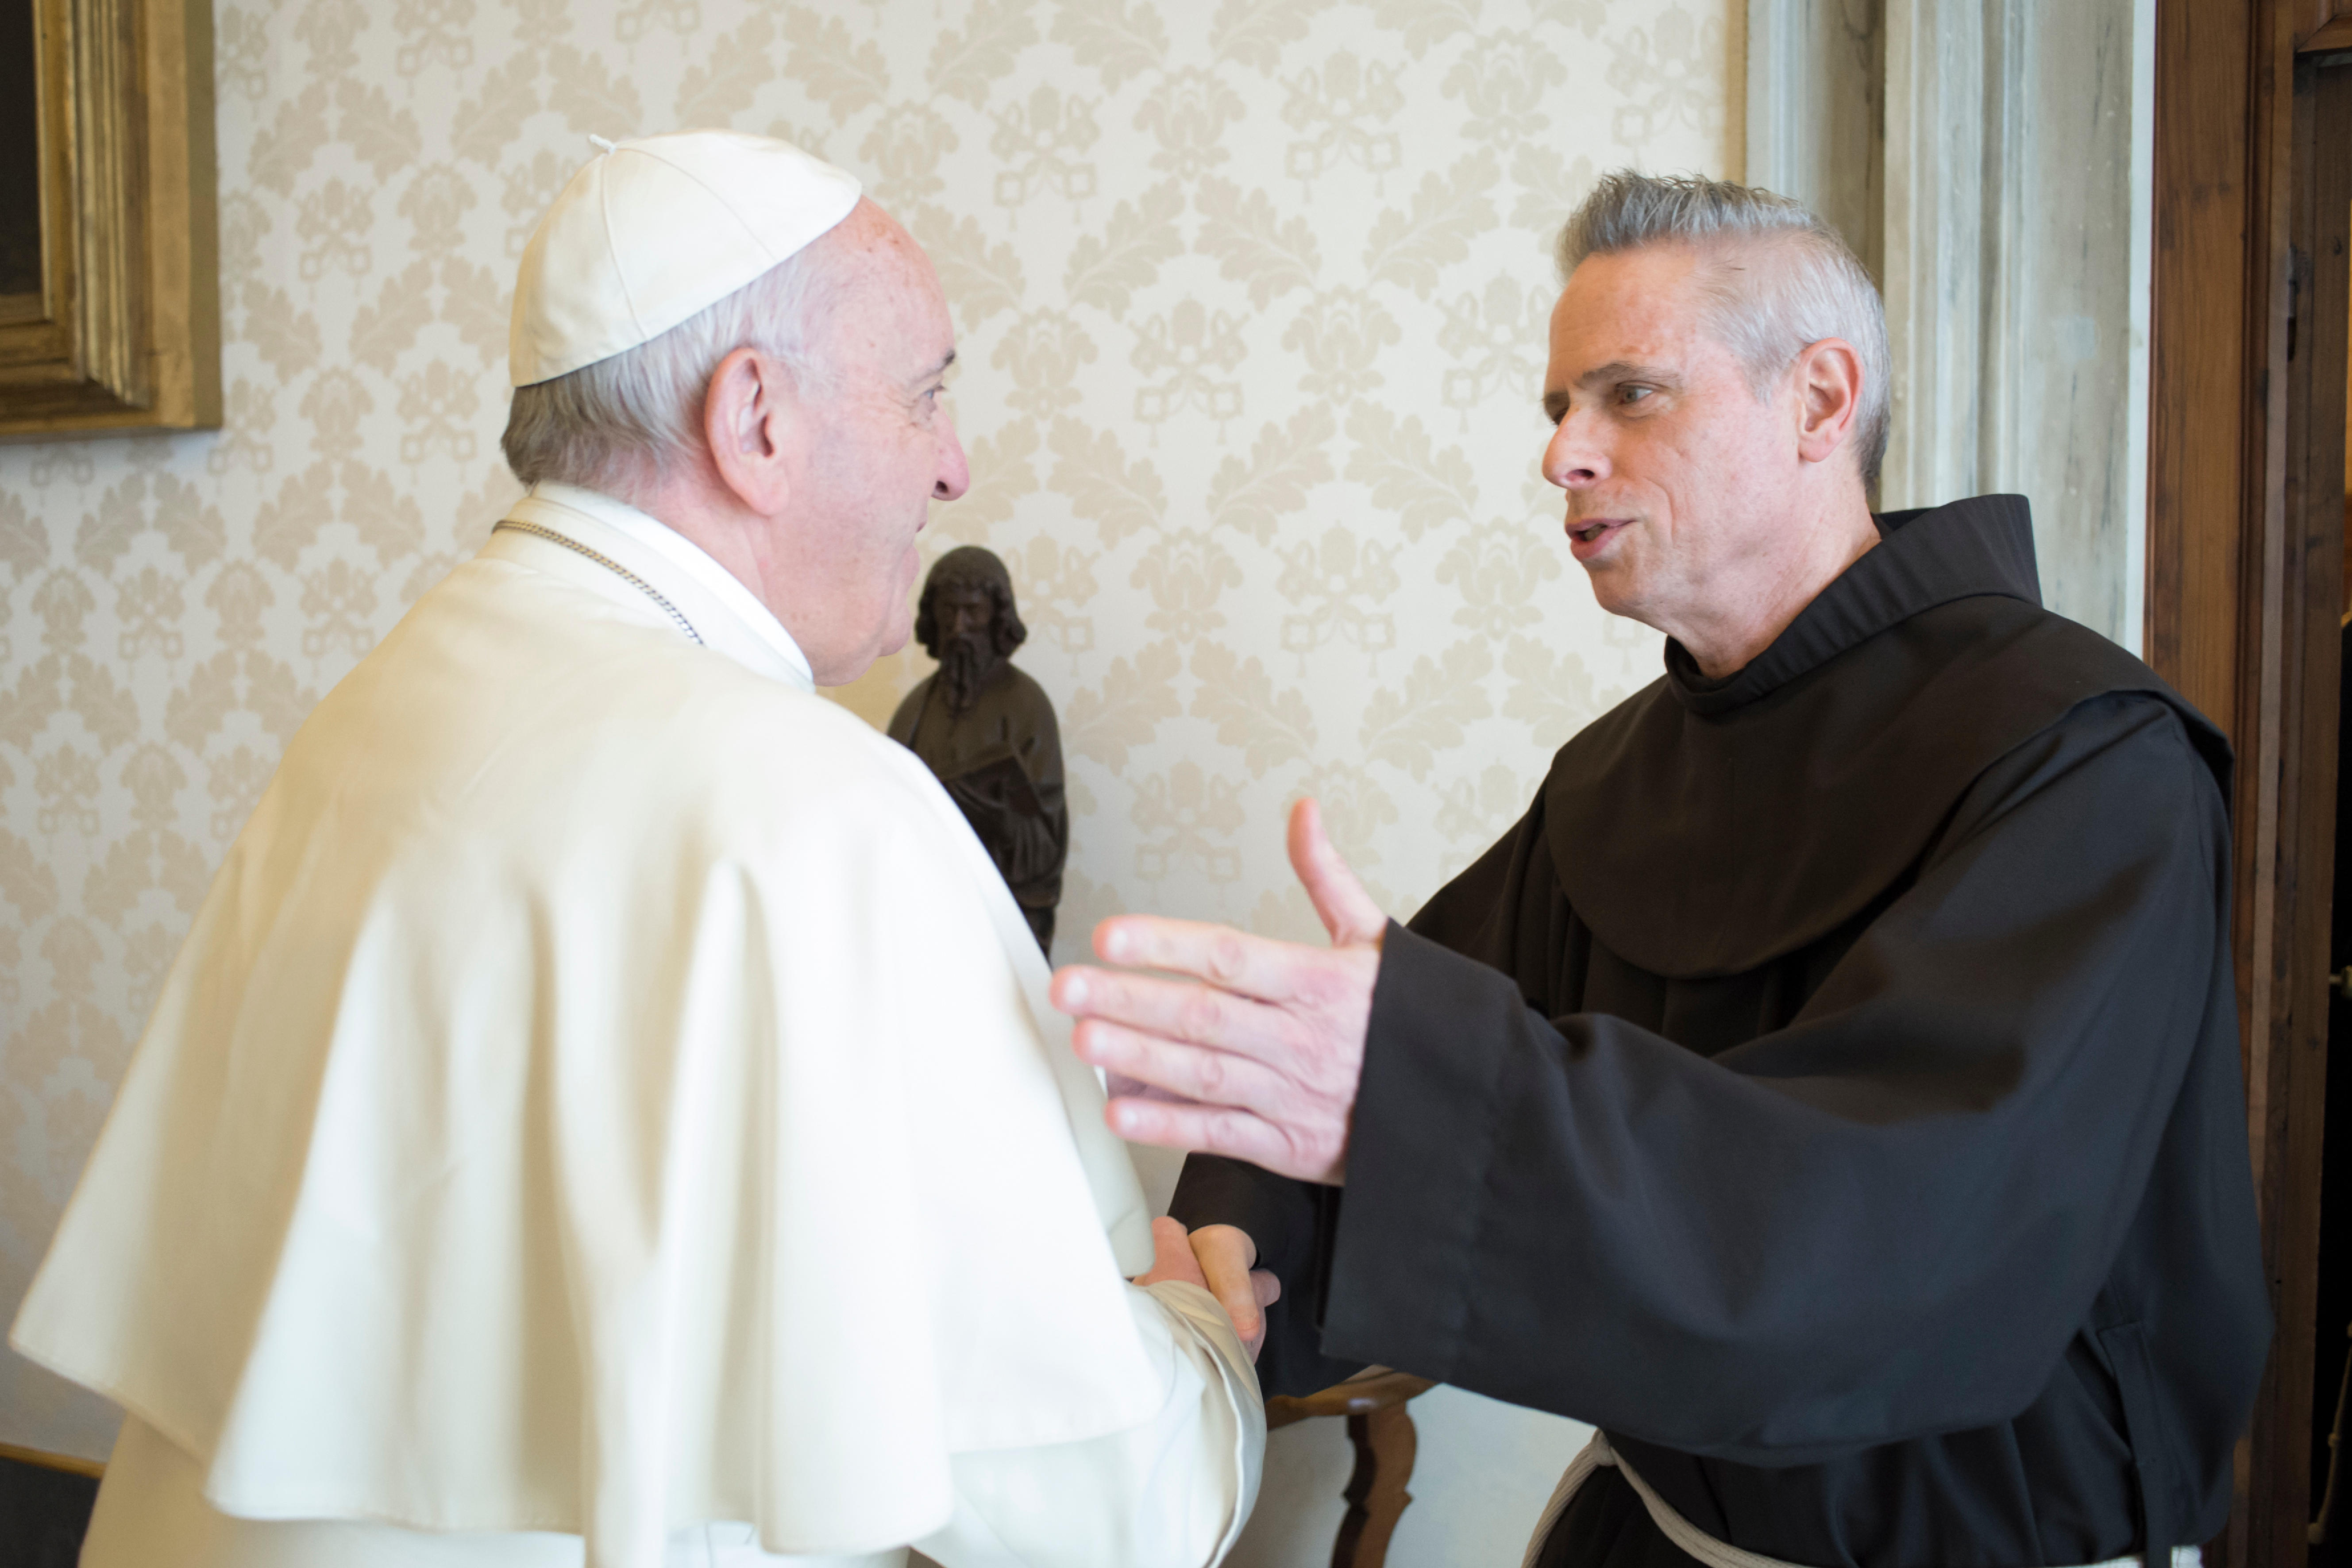 All hands on deck franciscan idea can expand church for The franciscan